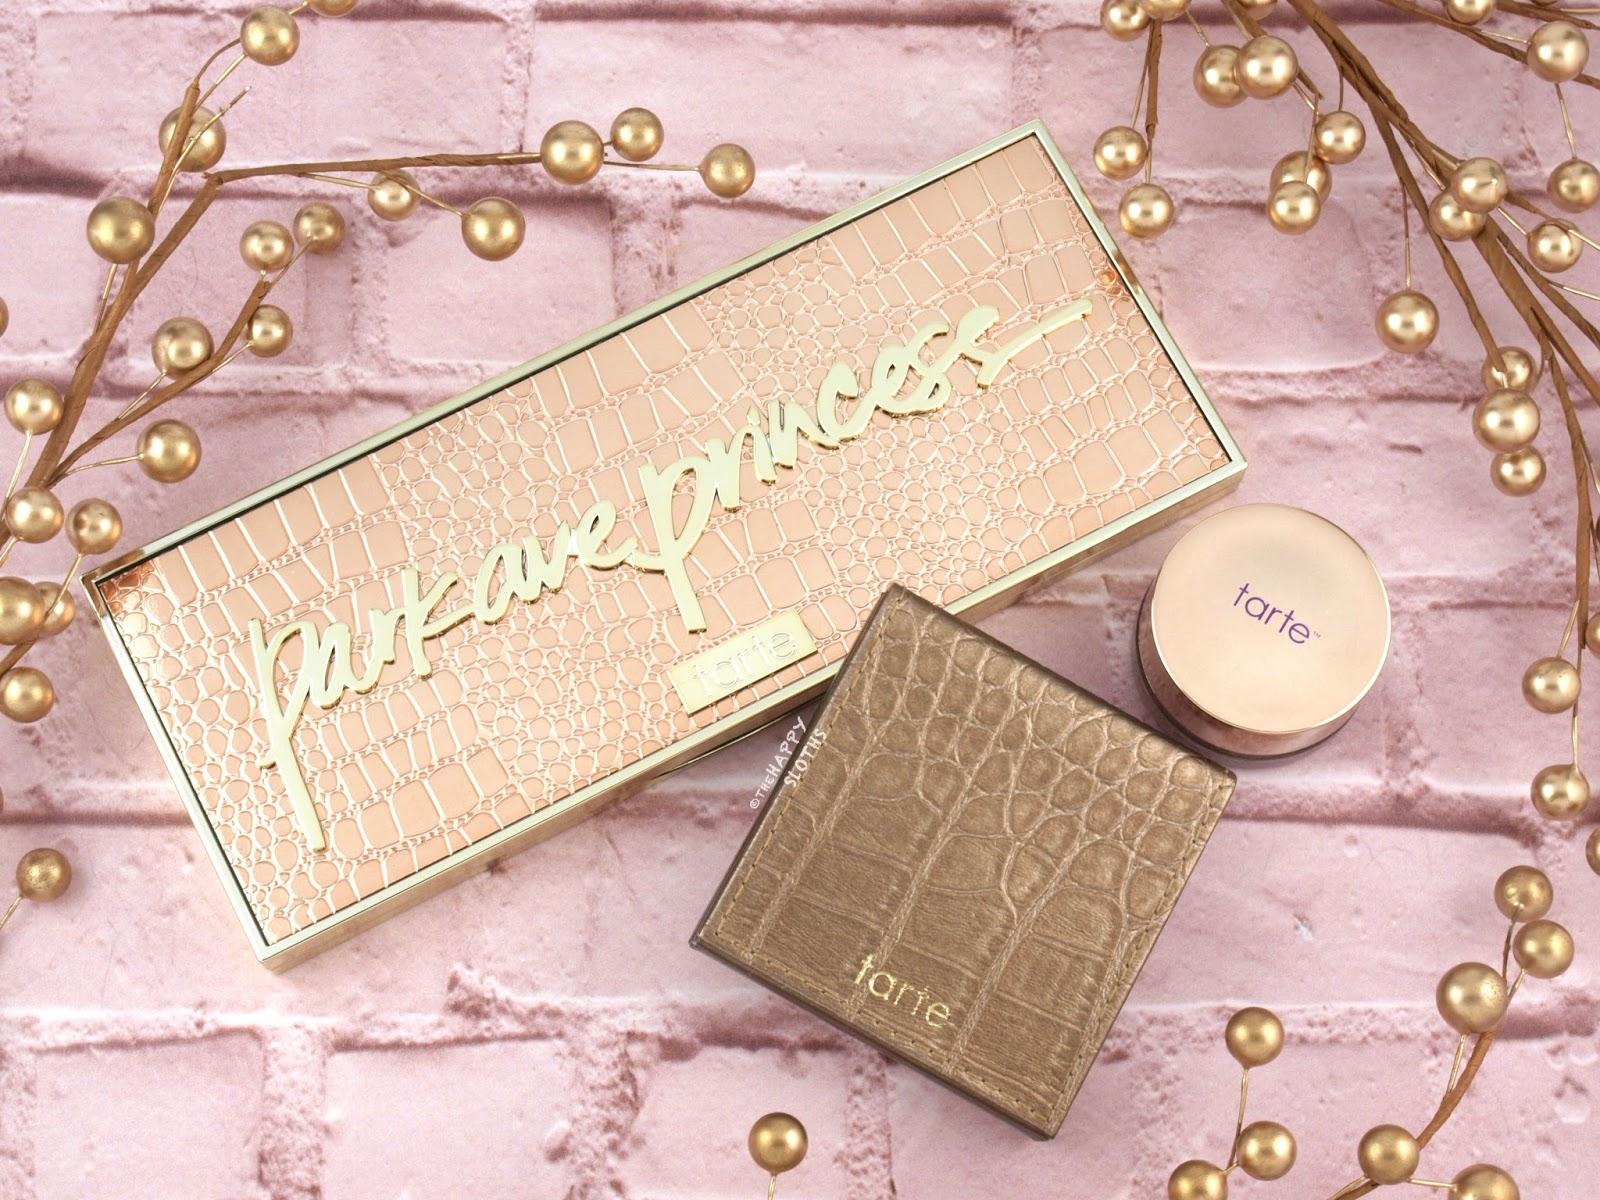 The_Happy_Sloths_Reviews_park_ave_princess_chisel_palette_From_Tarte_2.jpg